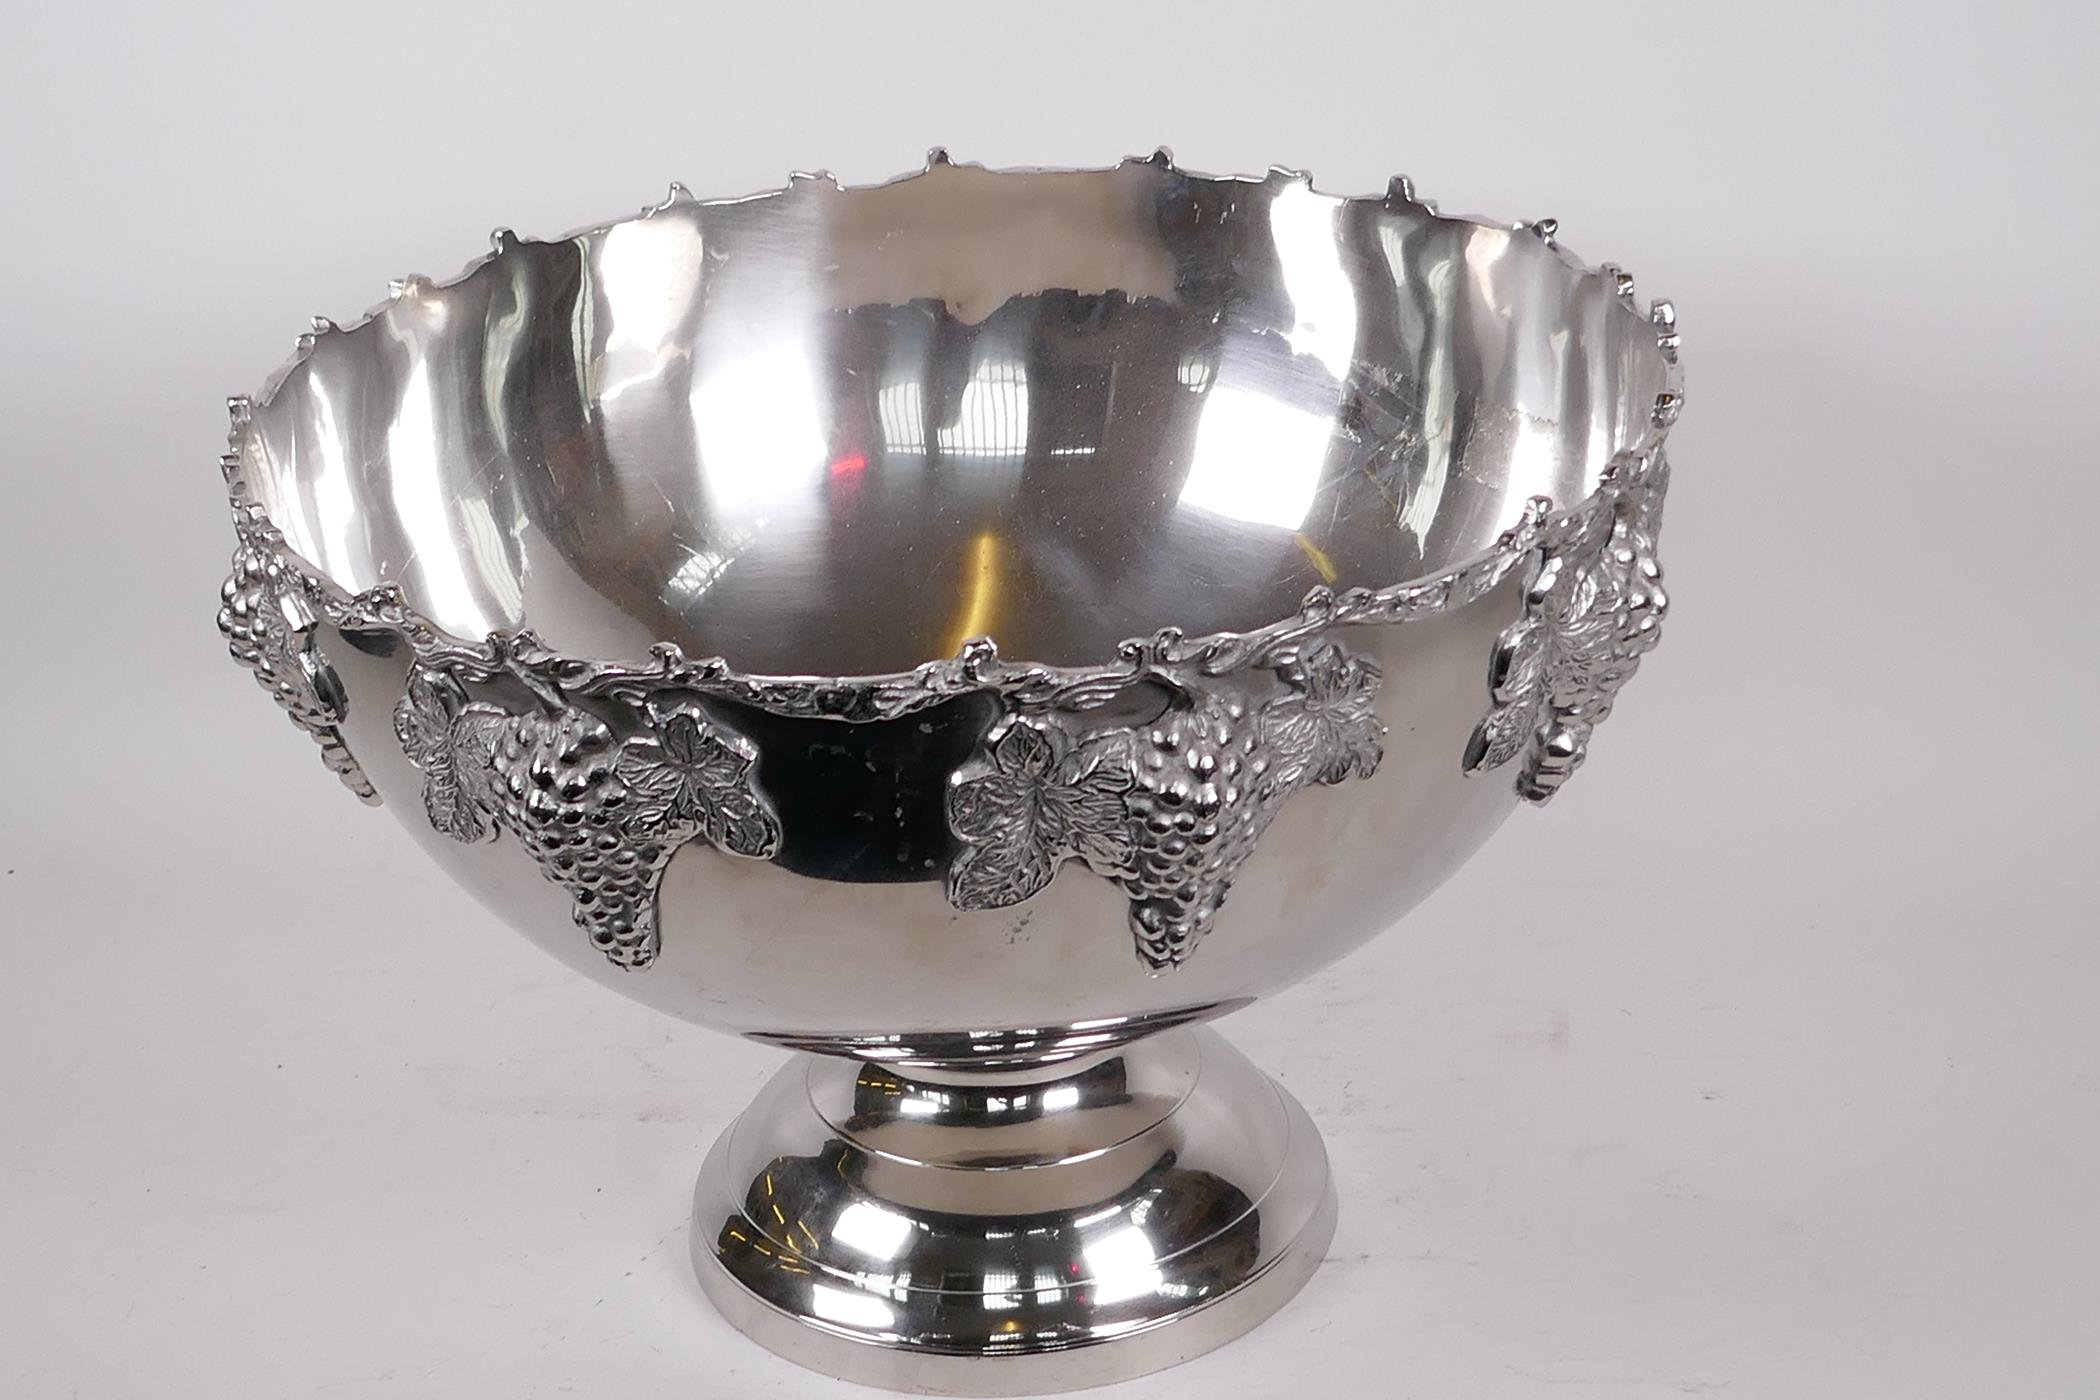 """A large plated pedestal punch bowl decorated with bunches of grapes, 15"""" diameter, 10"""" high - Image 2 of 3"""